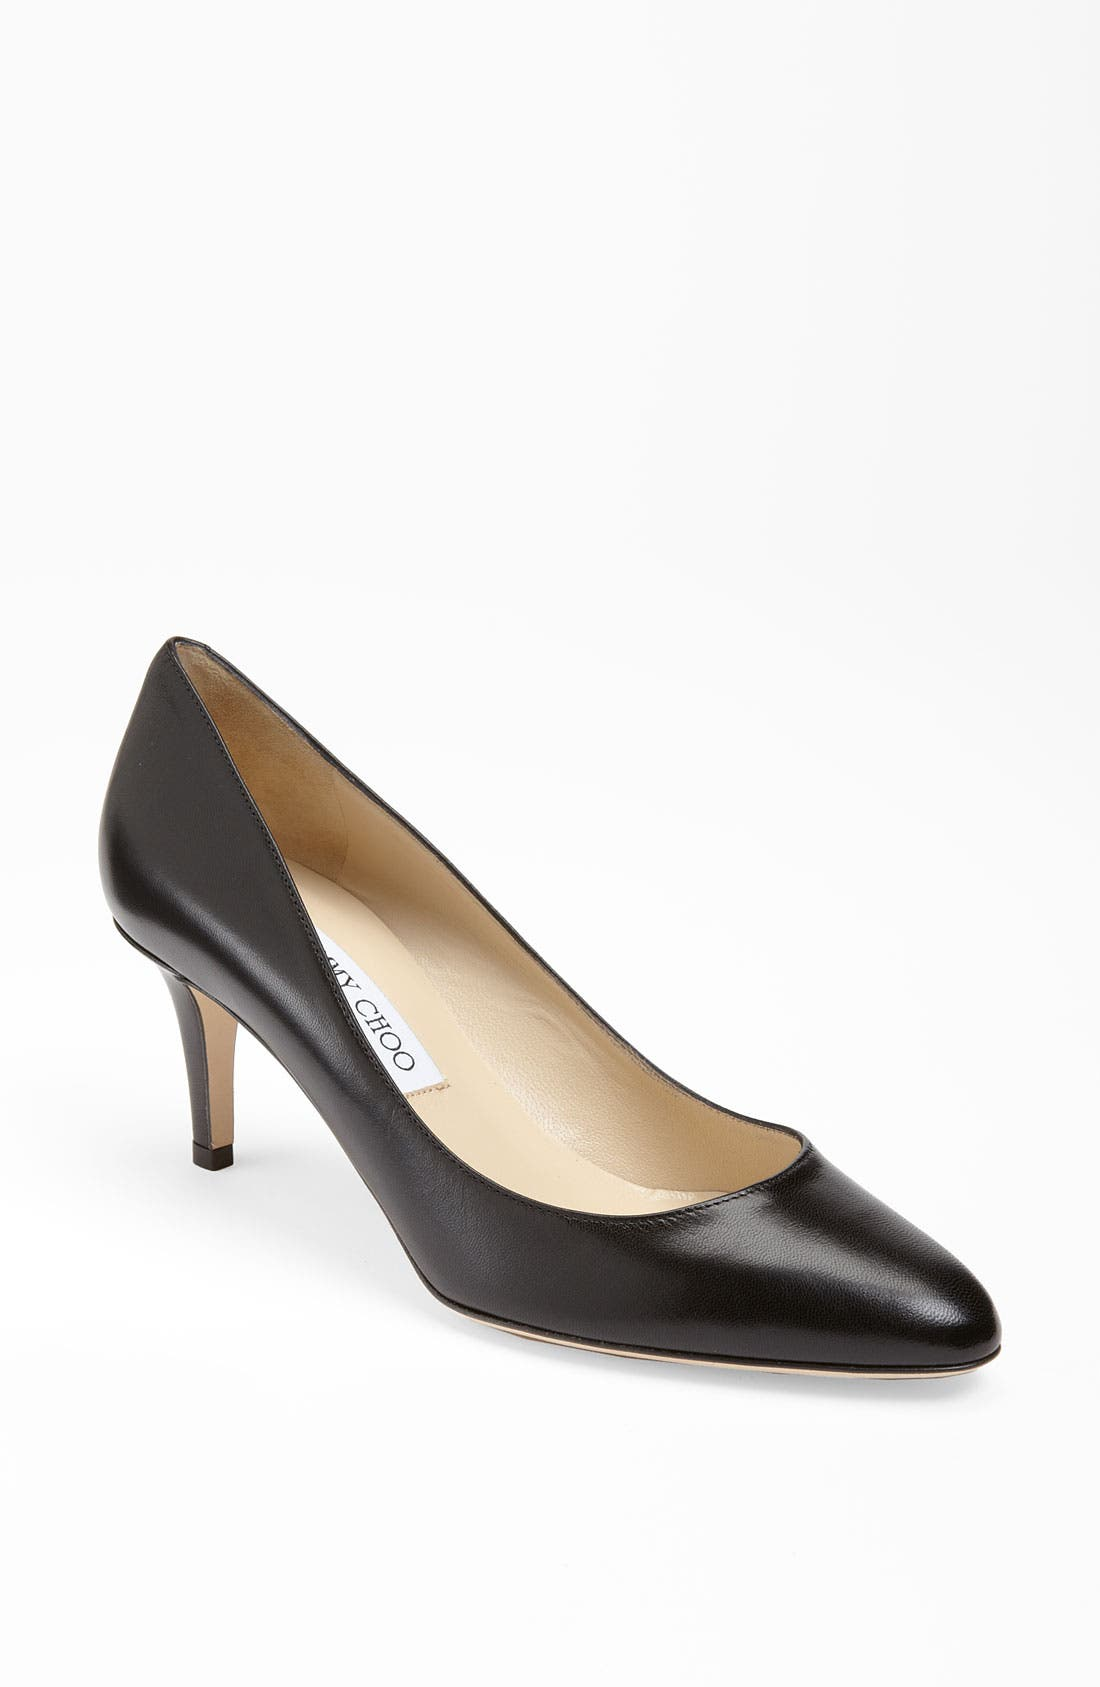 Main Image - Jimmy Choo 'Vega' Pump